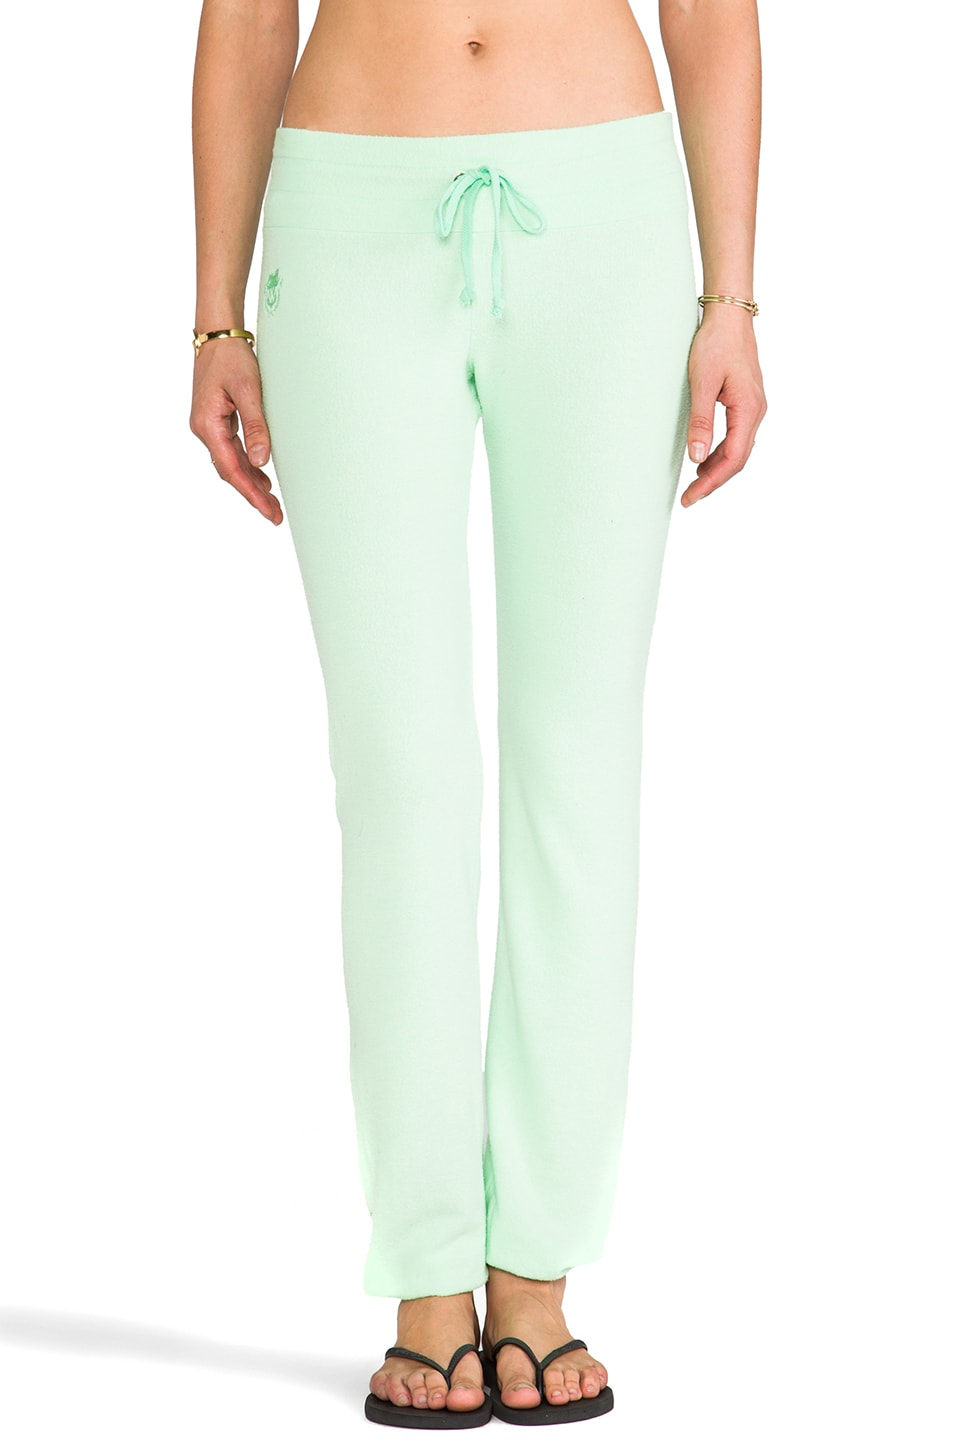 Wildfox Couture Malibu Skinny Sweats in Mint Julep